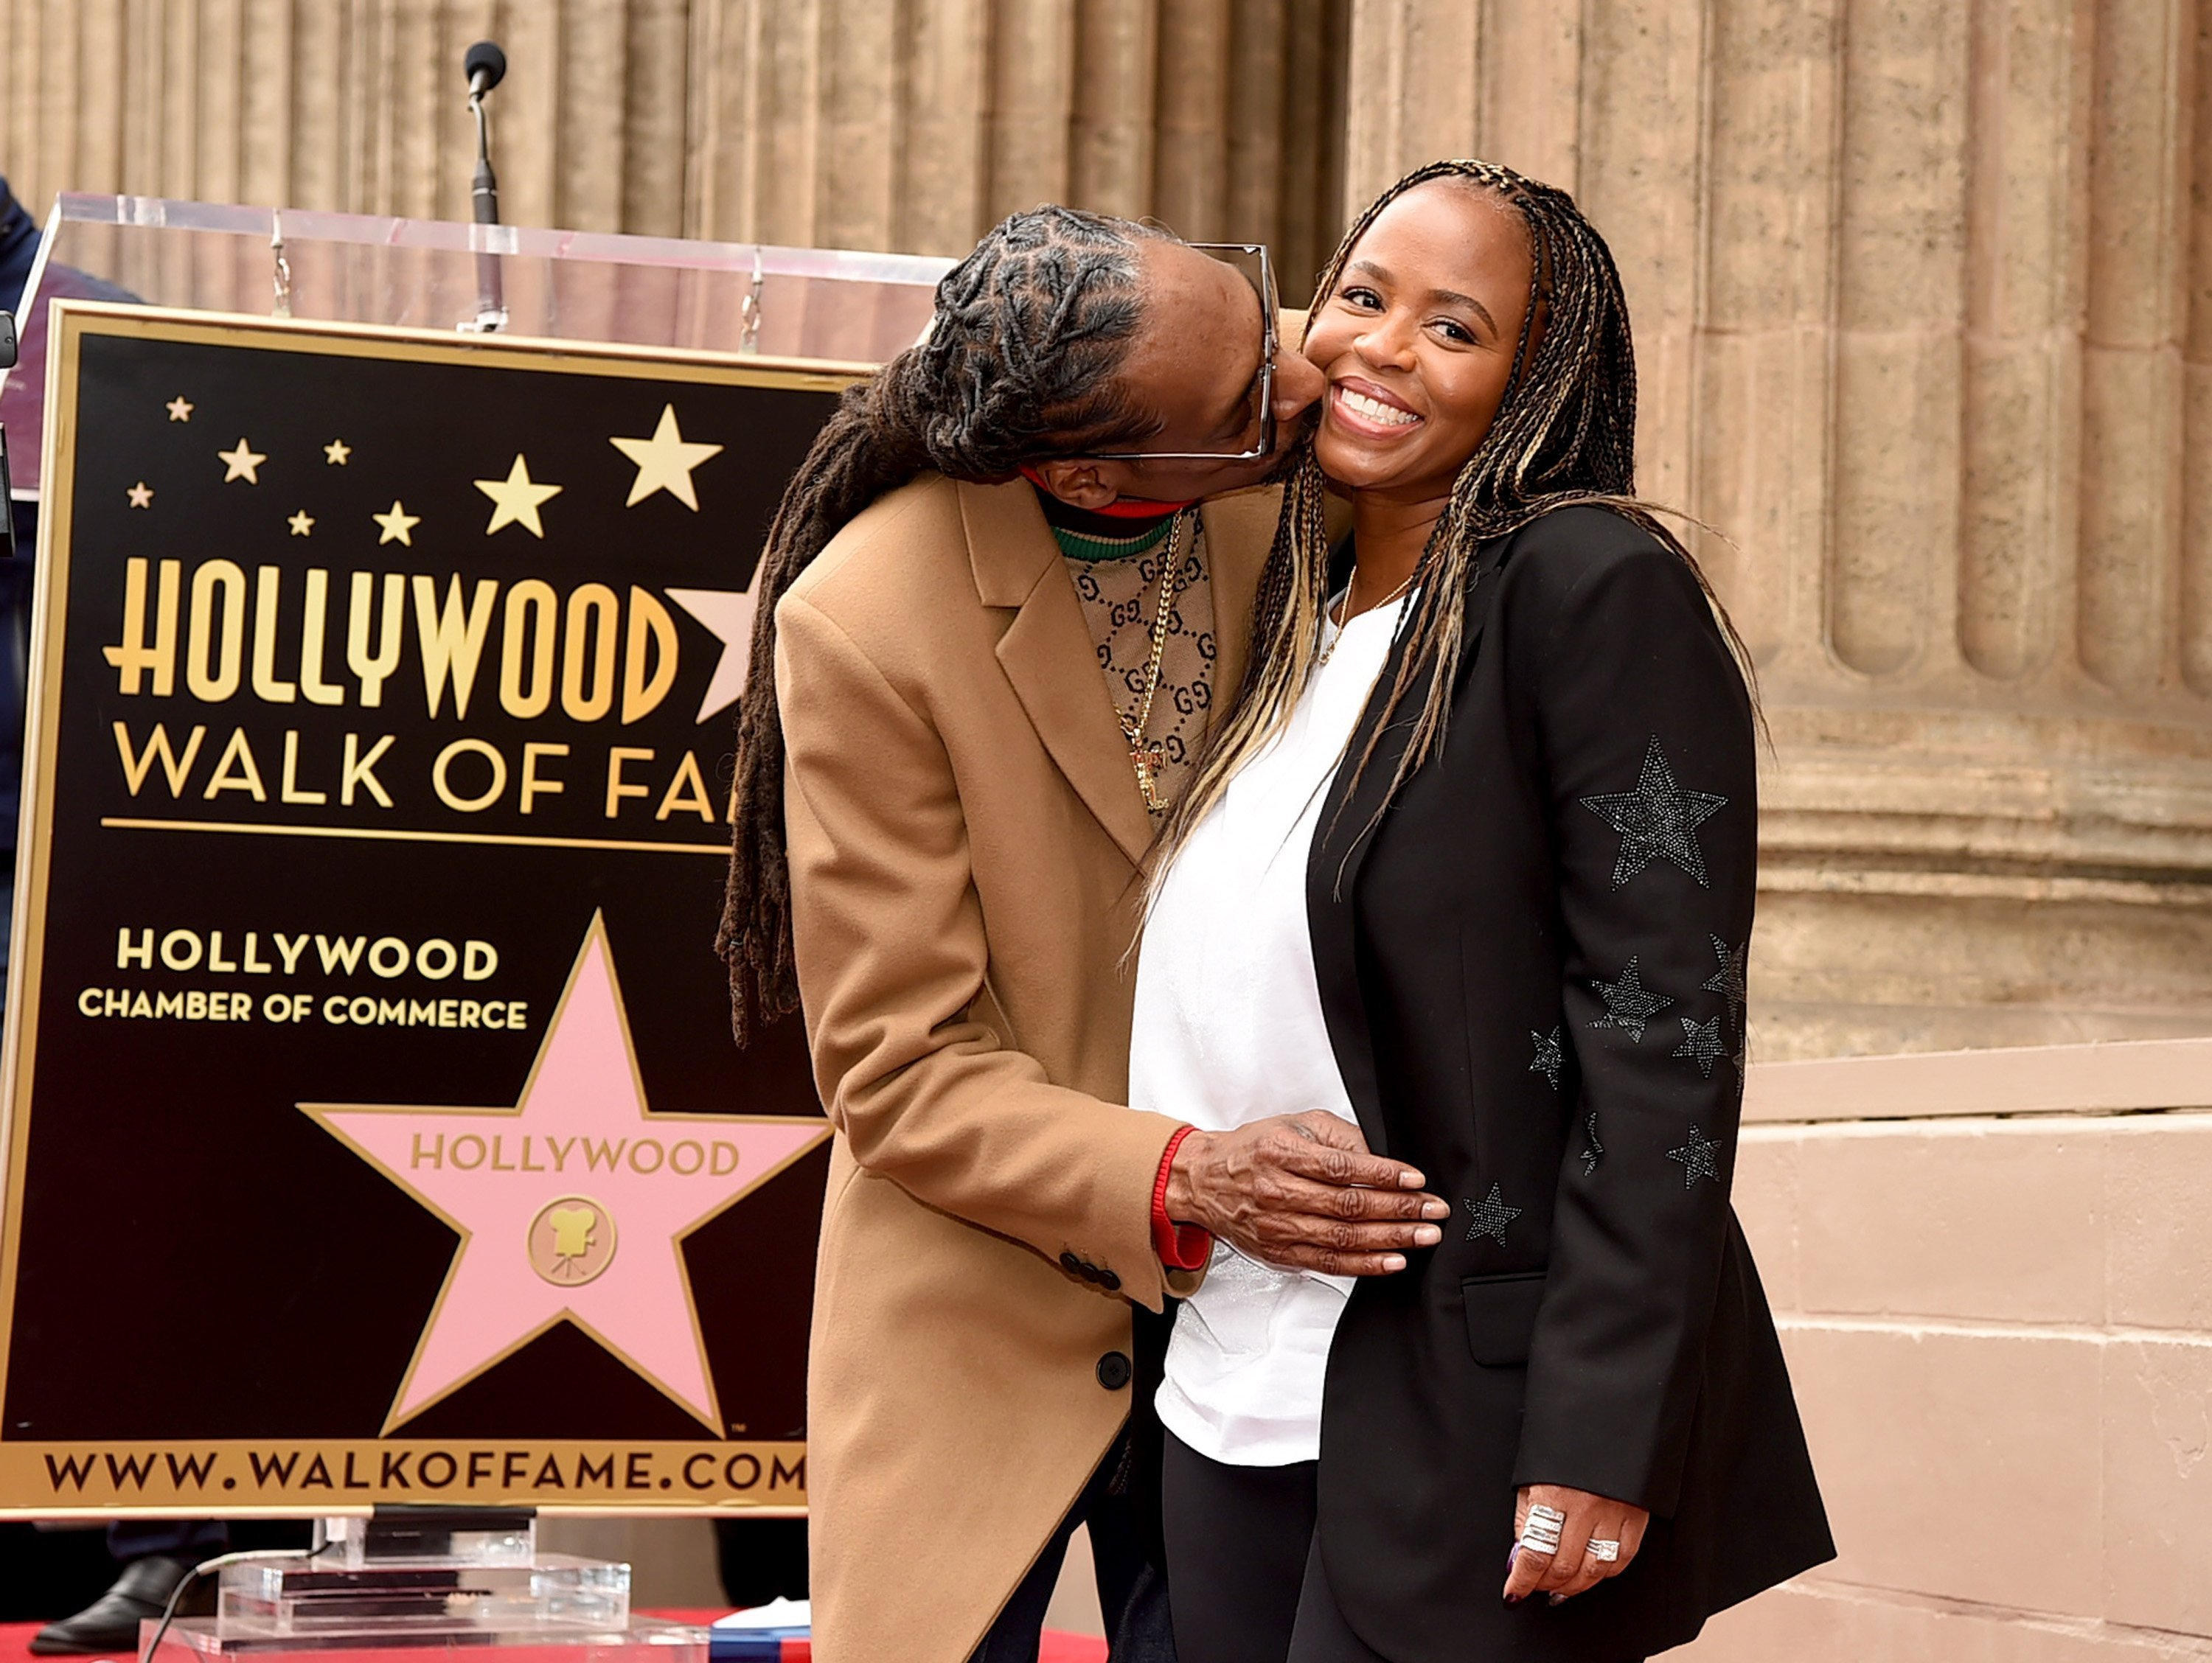 Snoop Dogg with his wife Shante Broadus on The Hollywood Walk Of Fame on November 19, 2018. | Source: Getty Images